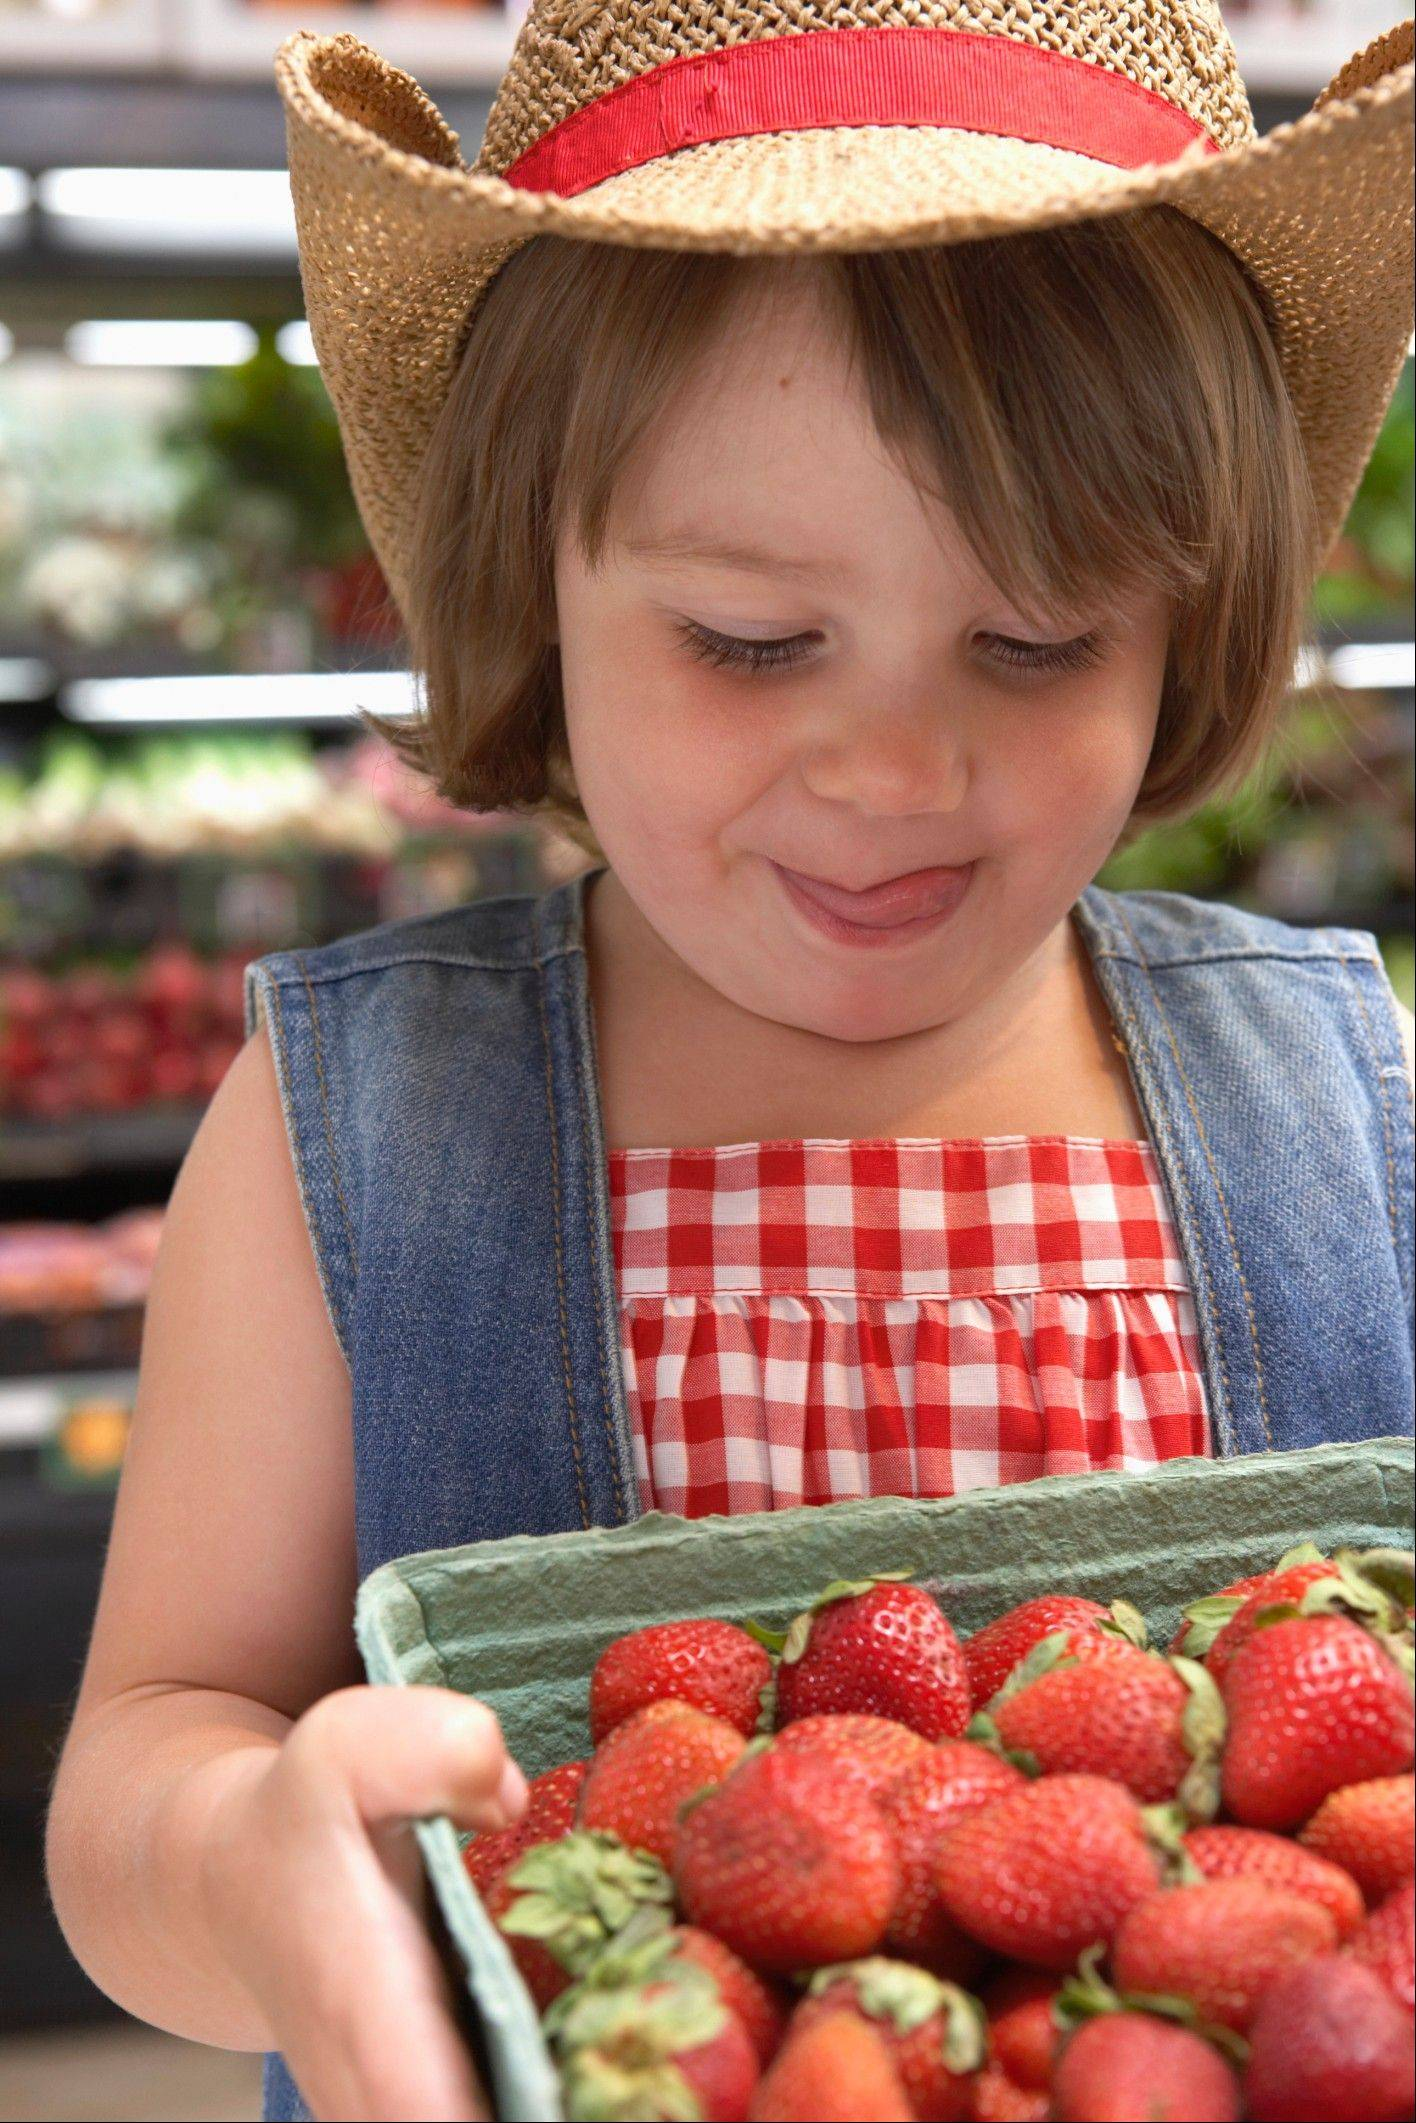 Strawberries will be plentiful at the annual Long Grove Strawberry Festival.